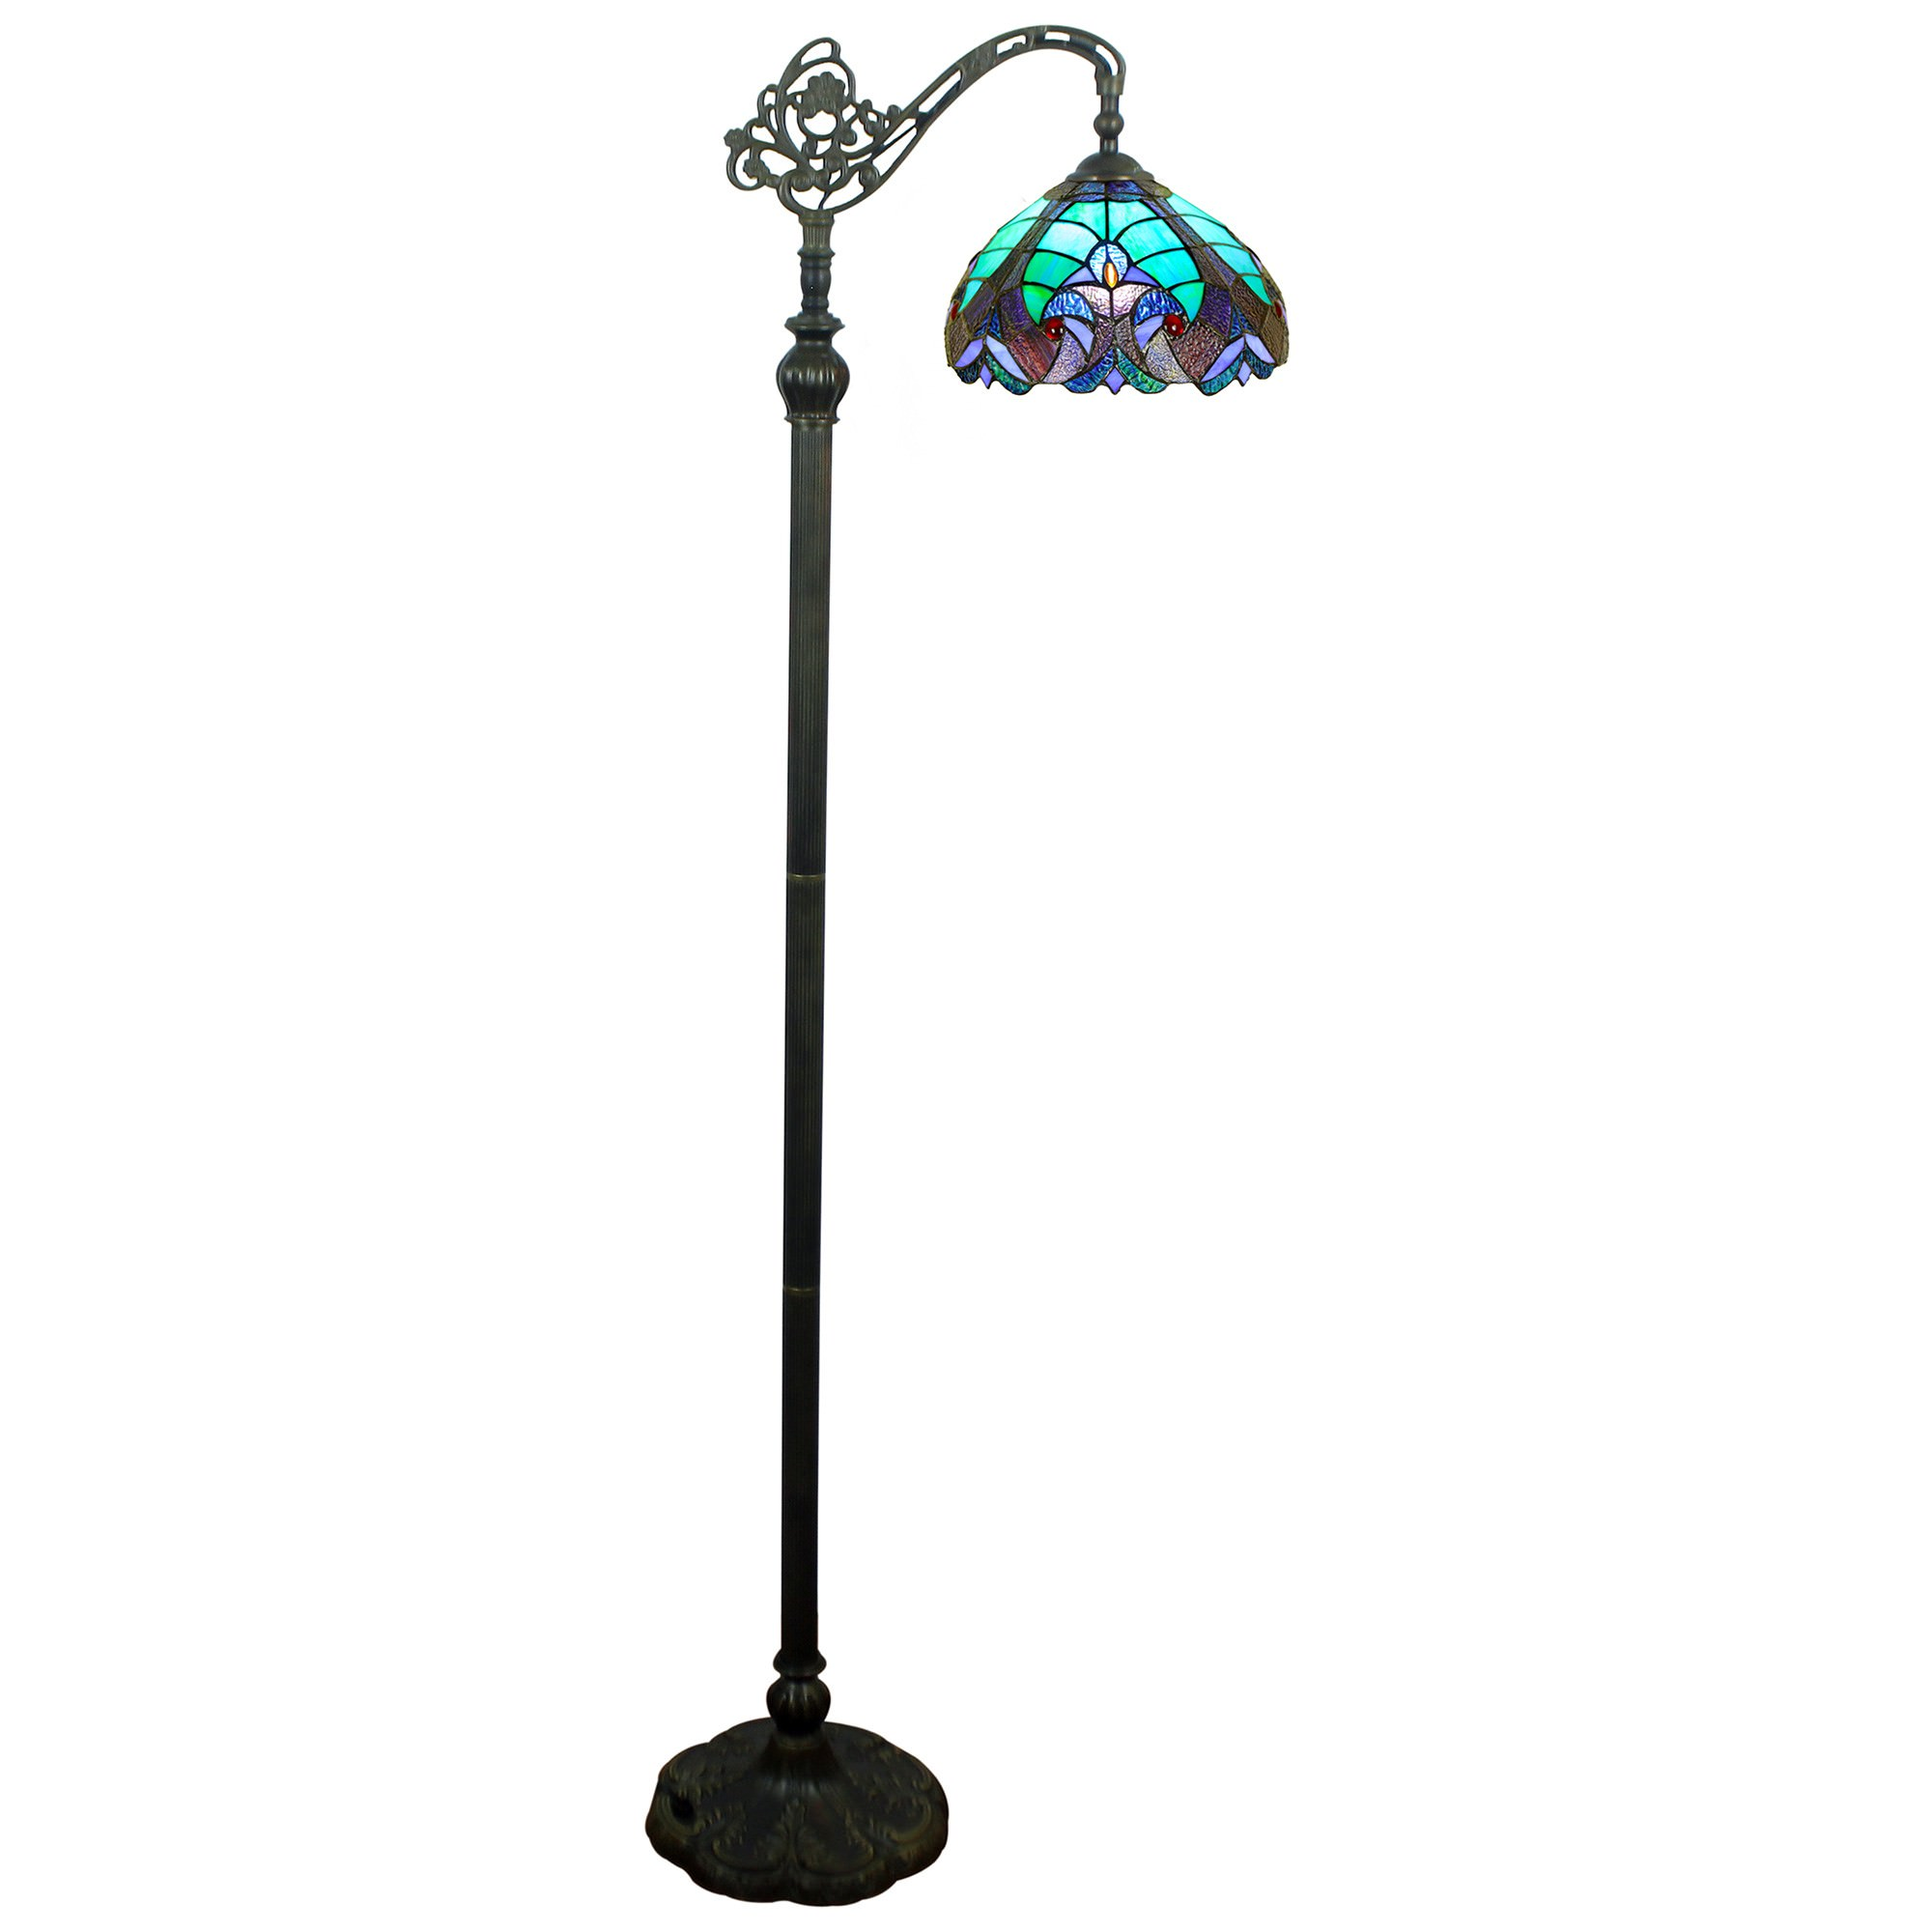 Ebor Tiffany Stained Glass Edwardian Floor Lamp, Small